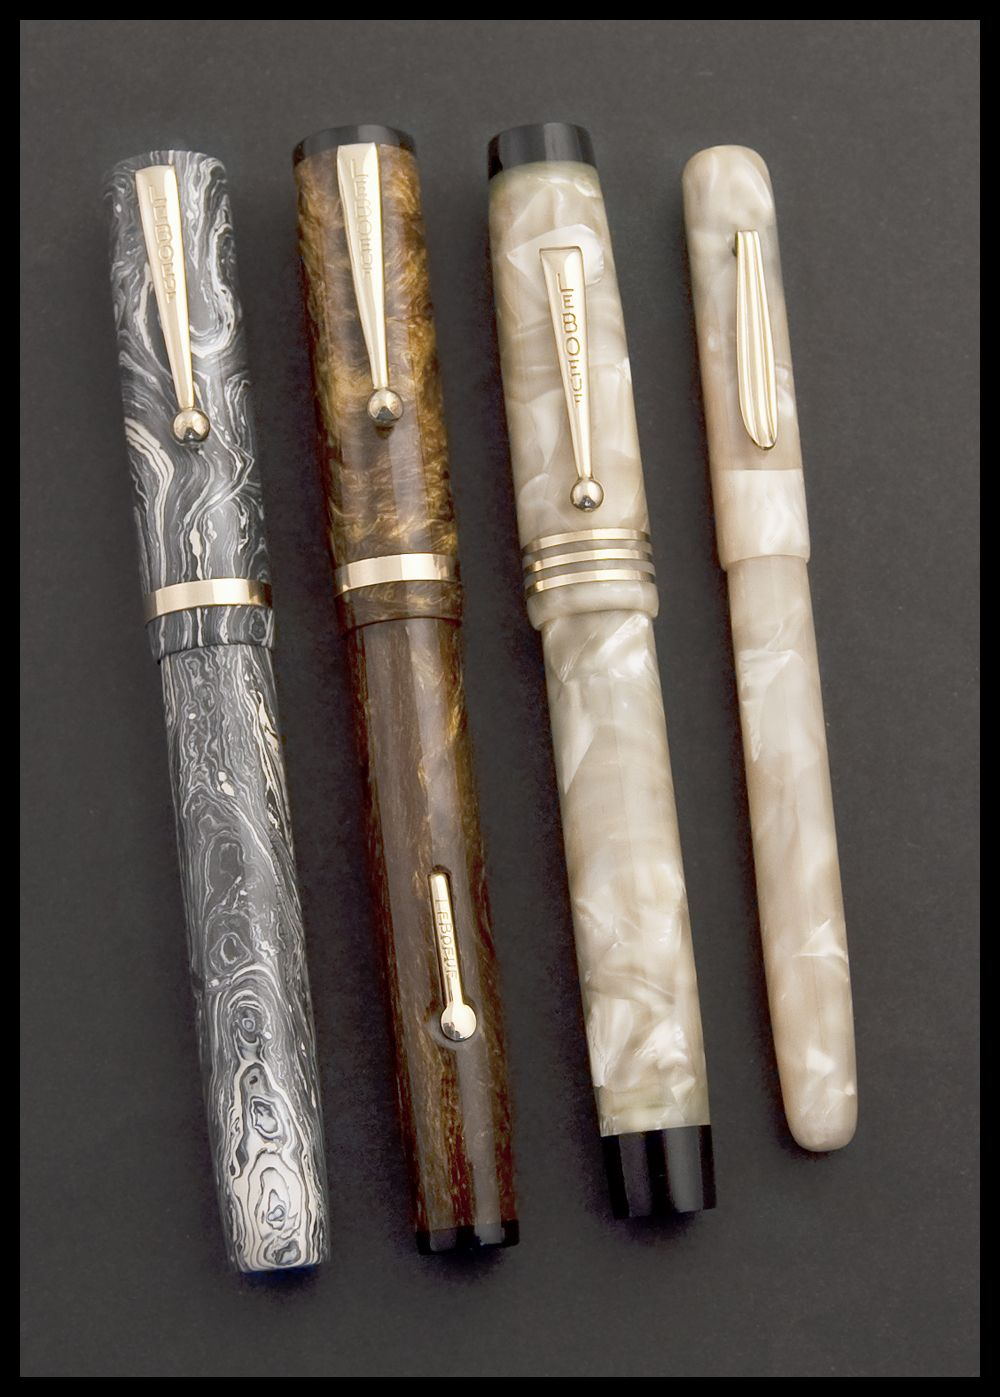 Three LeBoeuf fountain pens and a LeBoeuf Thermometer in cream pearl celluloid. Items made in Springfield between 1926 and 1932.